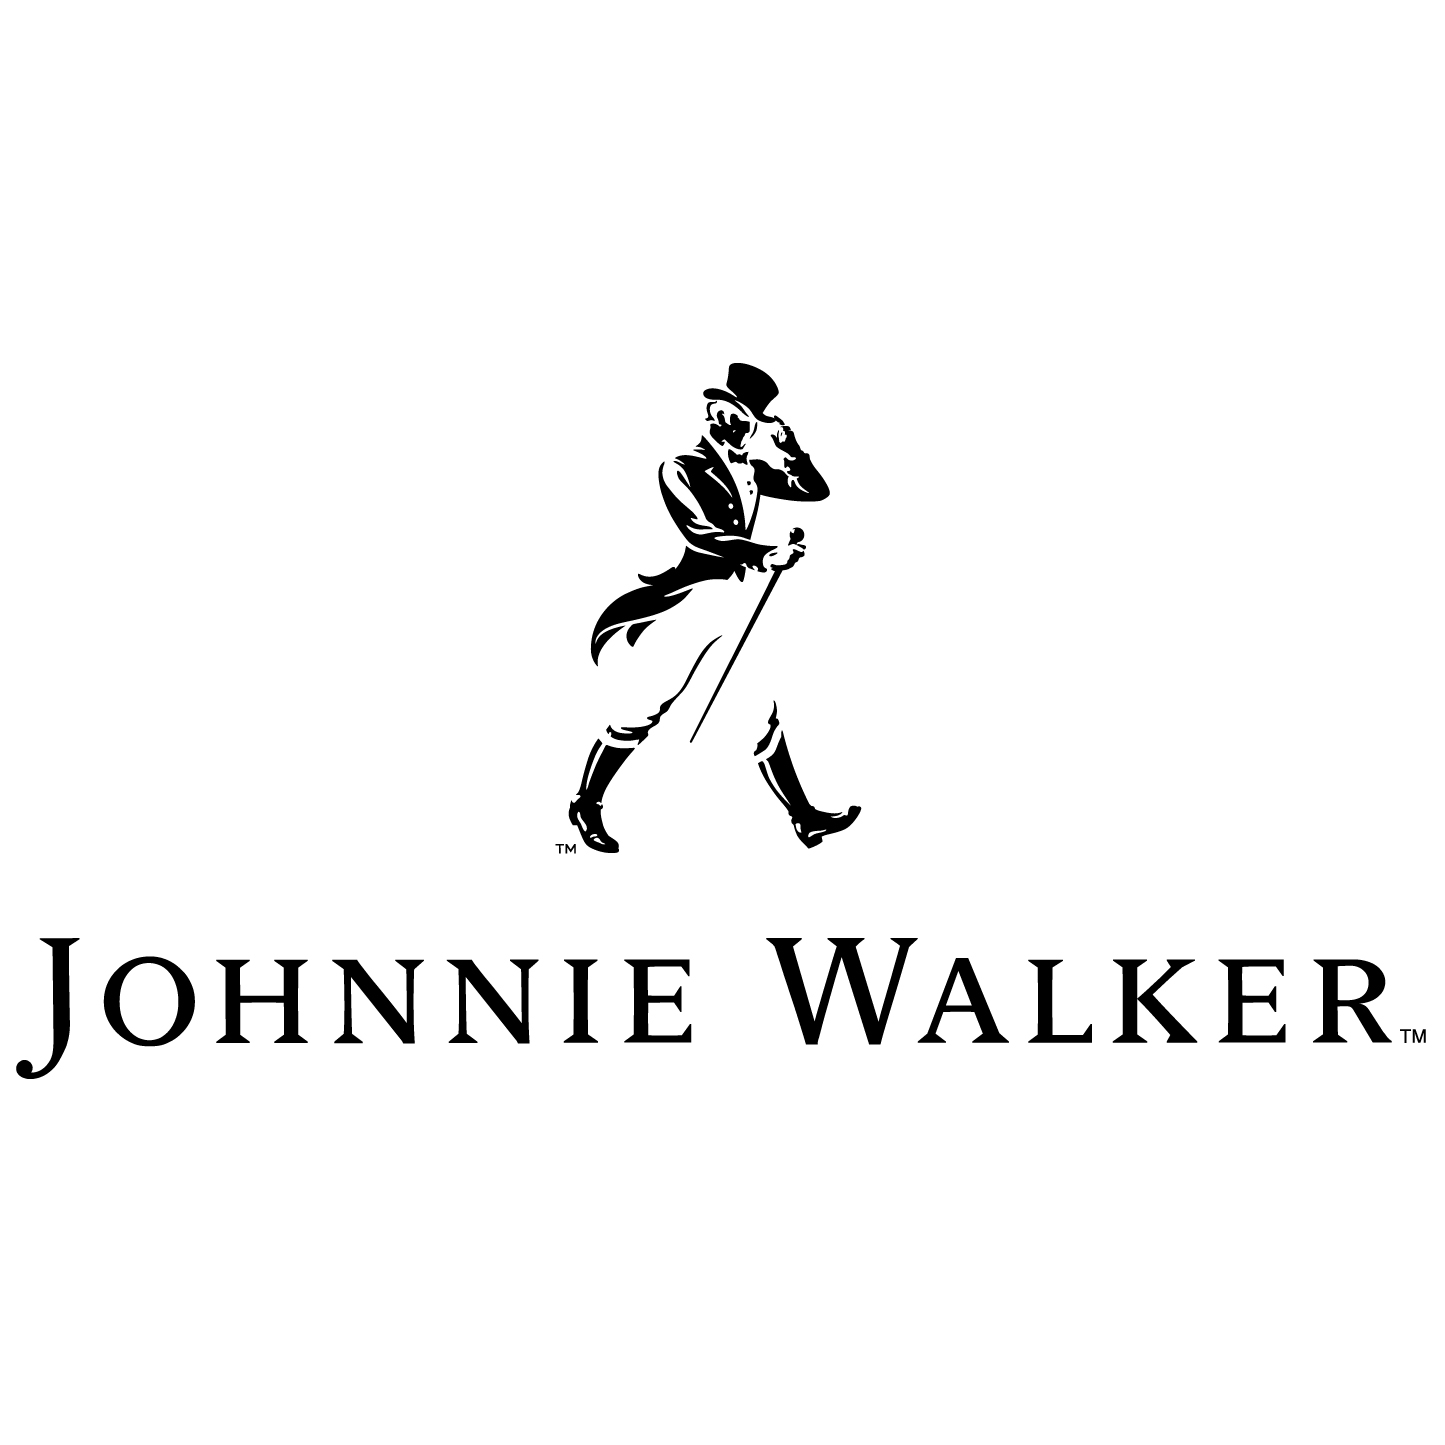 Johnnie Walker BW copy.jpg